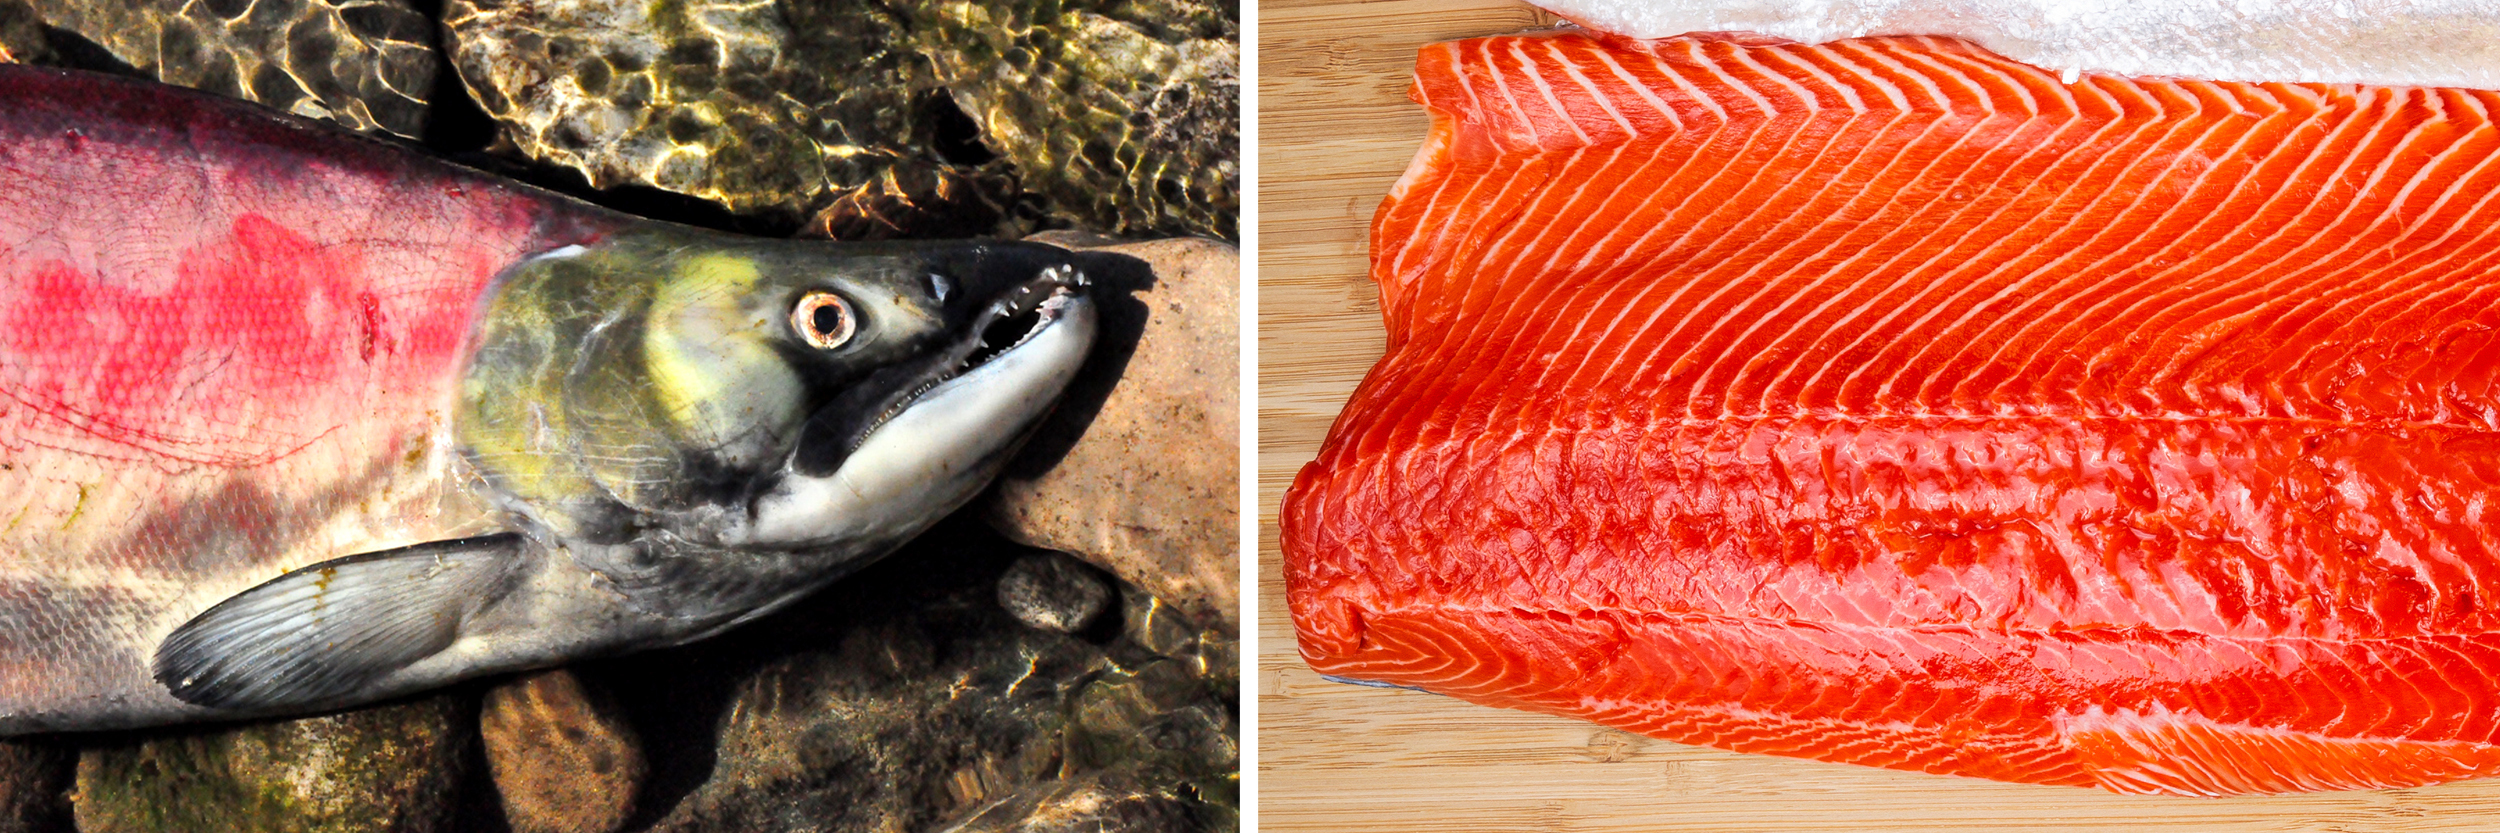 A sockeye salmon, location unknown; a sockeye salmon steak.